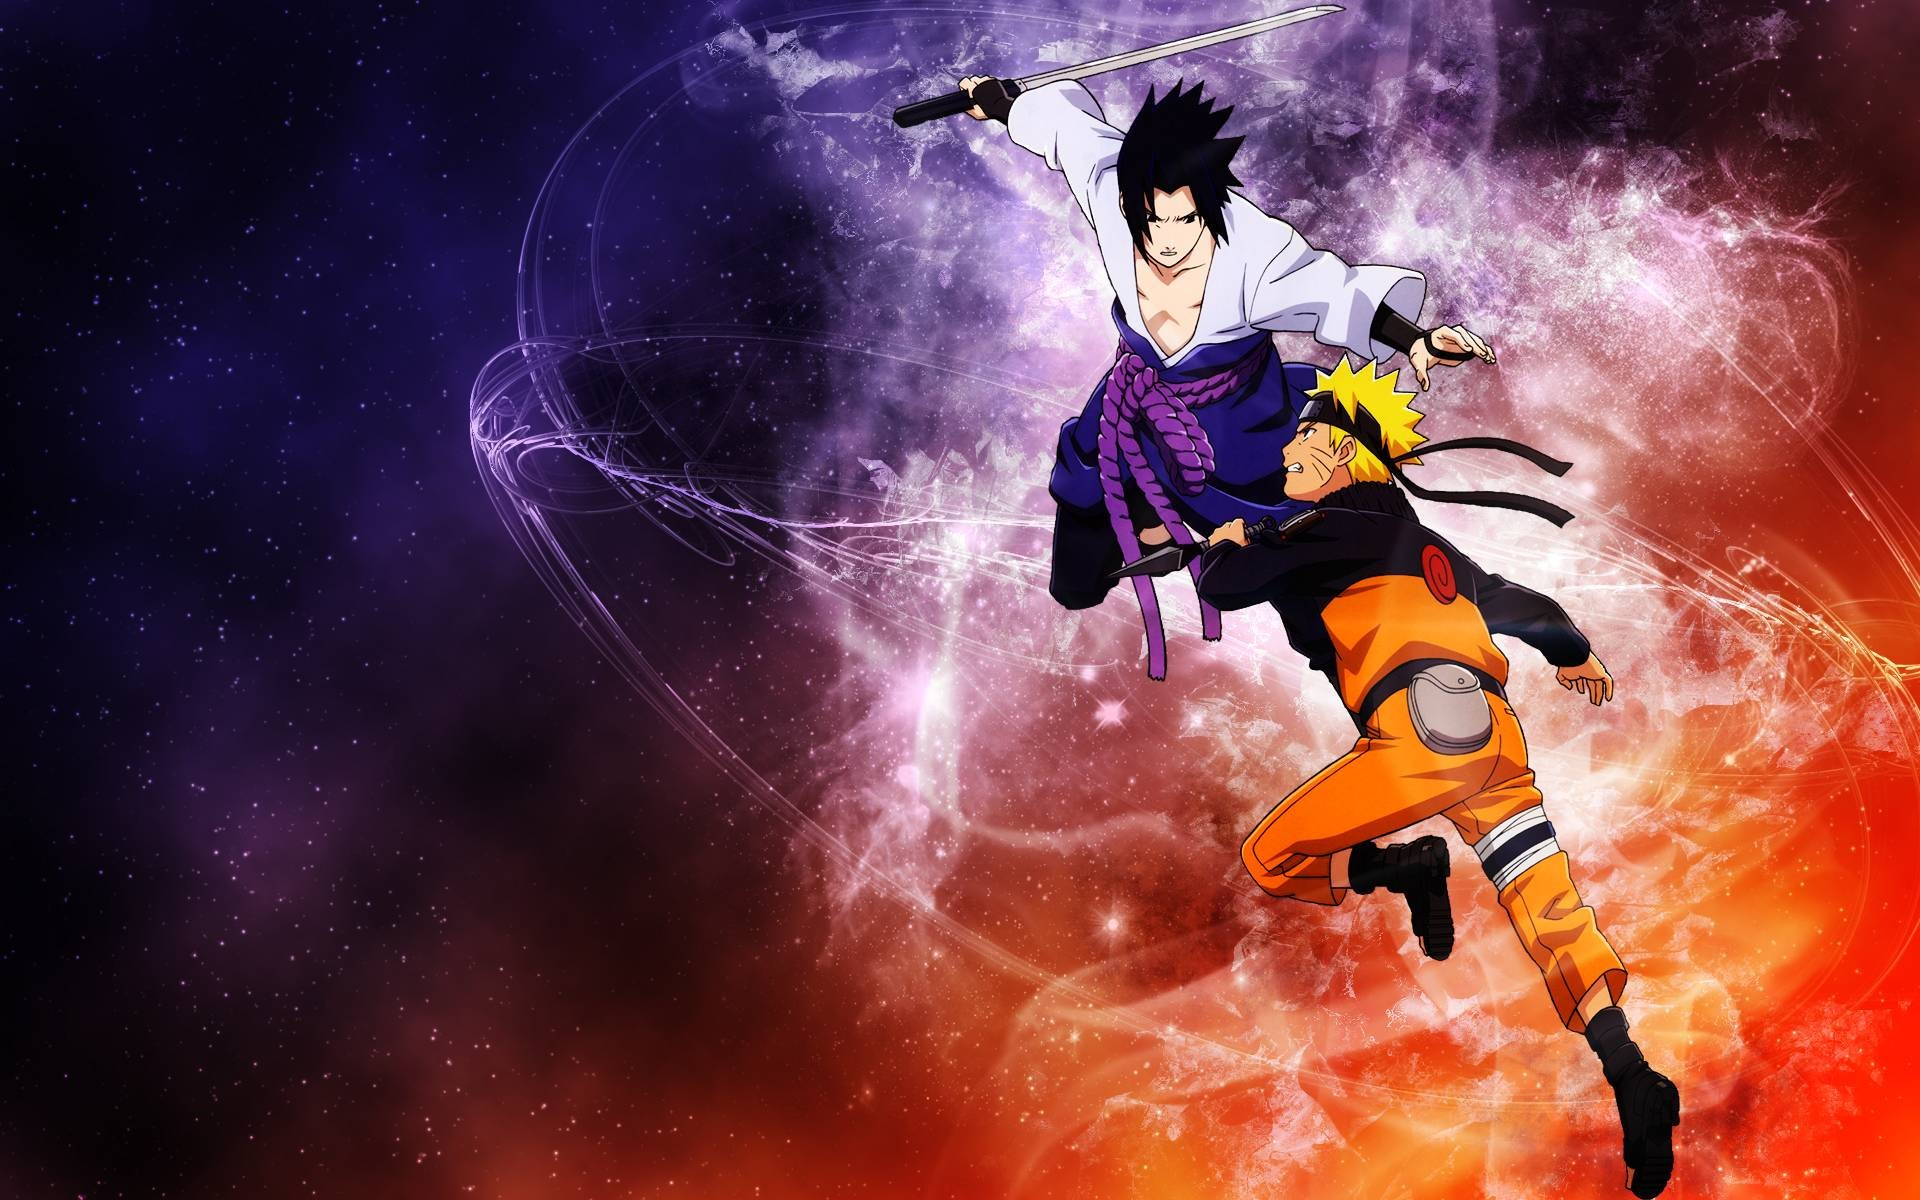 Pain Naruto HD Wallpapers Backgrounds Wallpaper | HD Wallpapers | Pinterest  | Hd wallpaper, Wallpaper and Wallpaper backgrounds